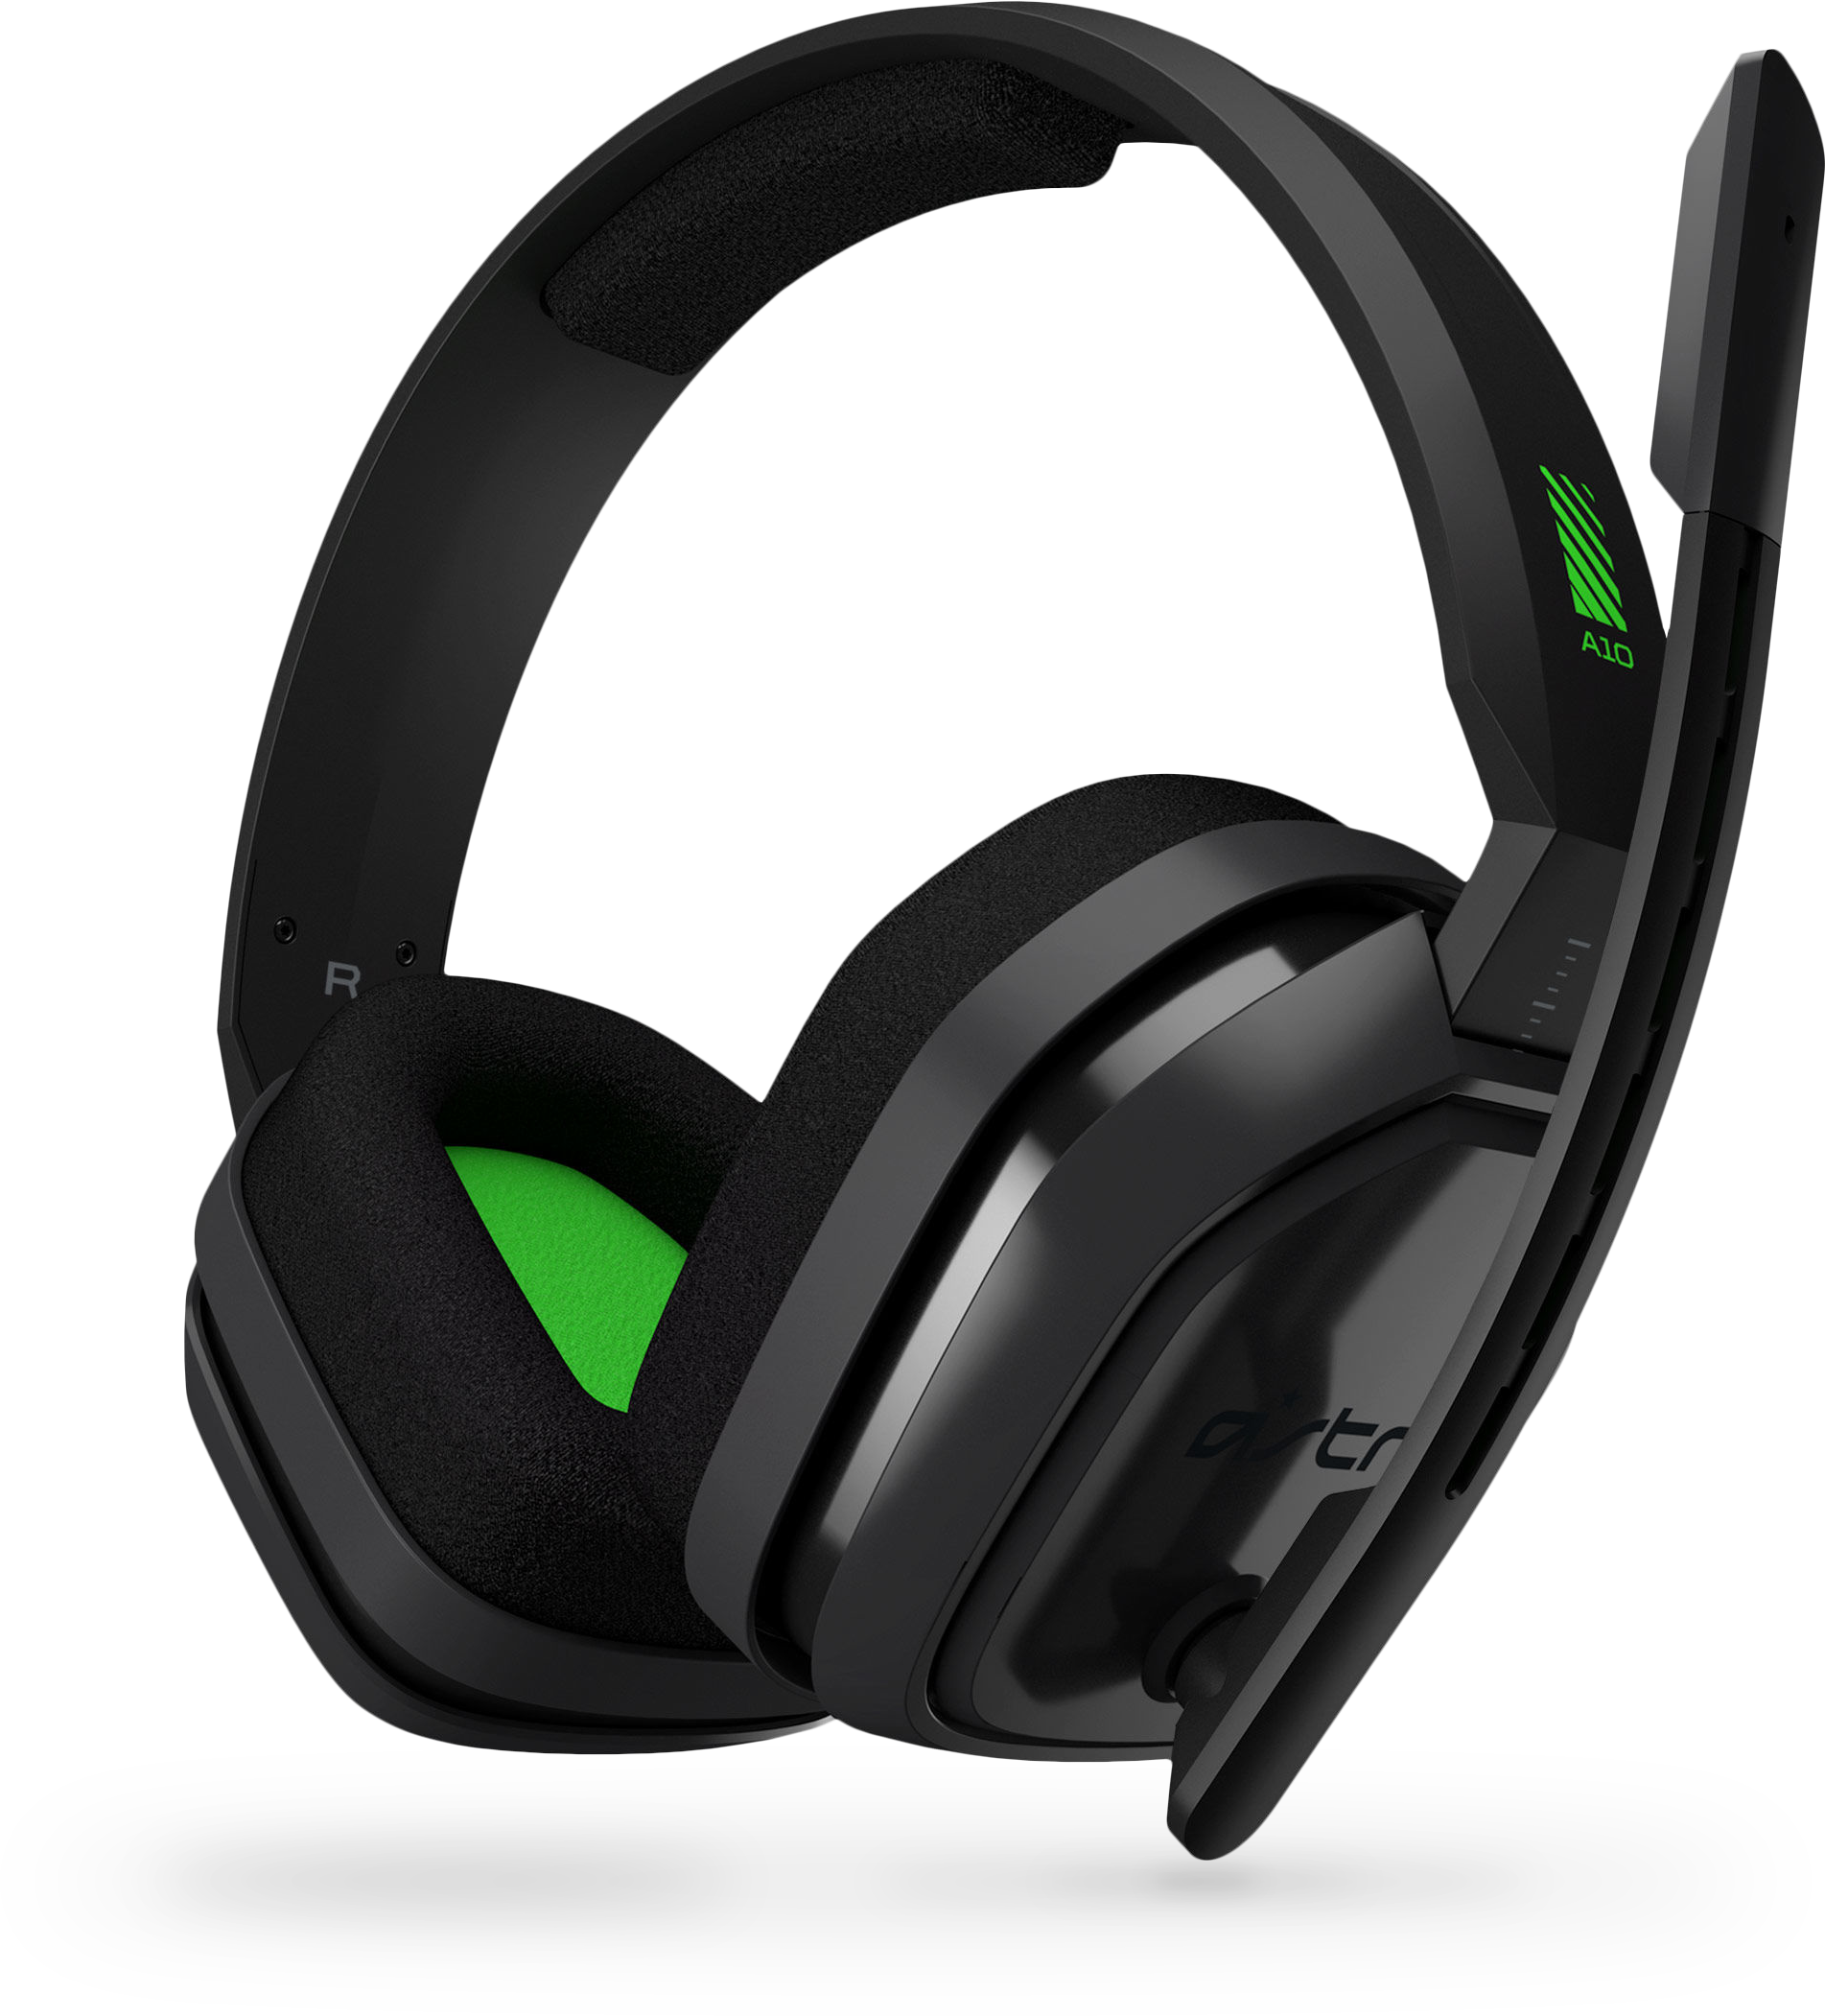 Logitech A10 Headset for Xbox One (Grey/Green) from a left angle